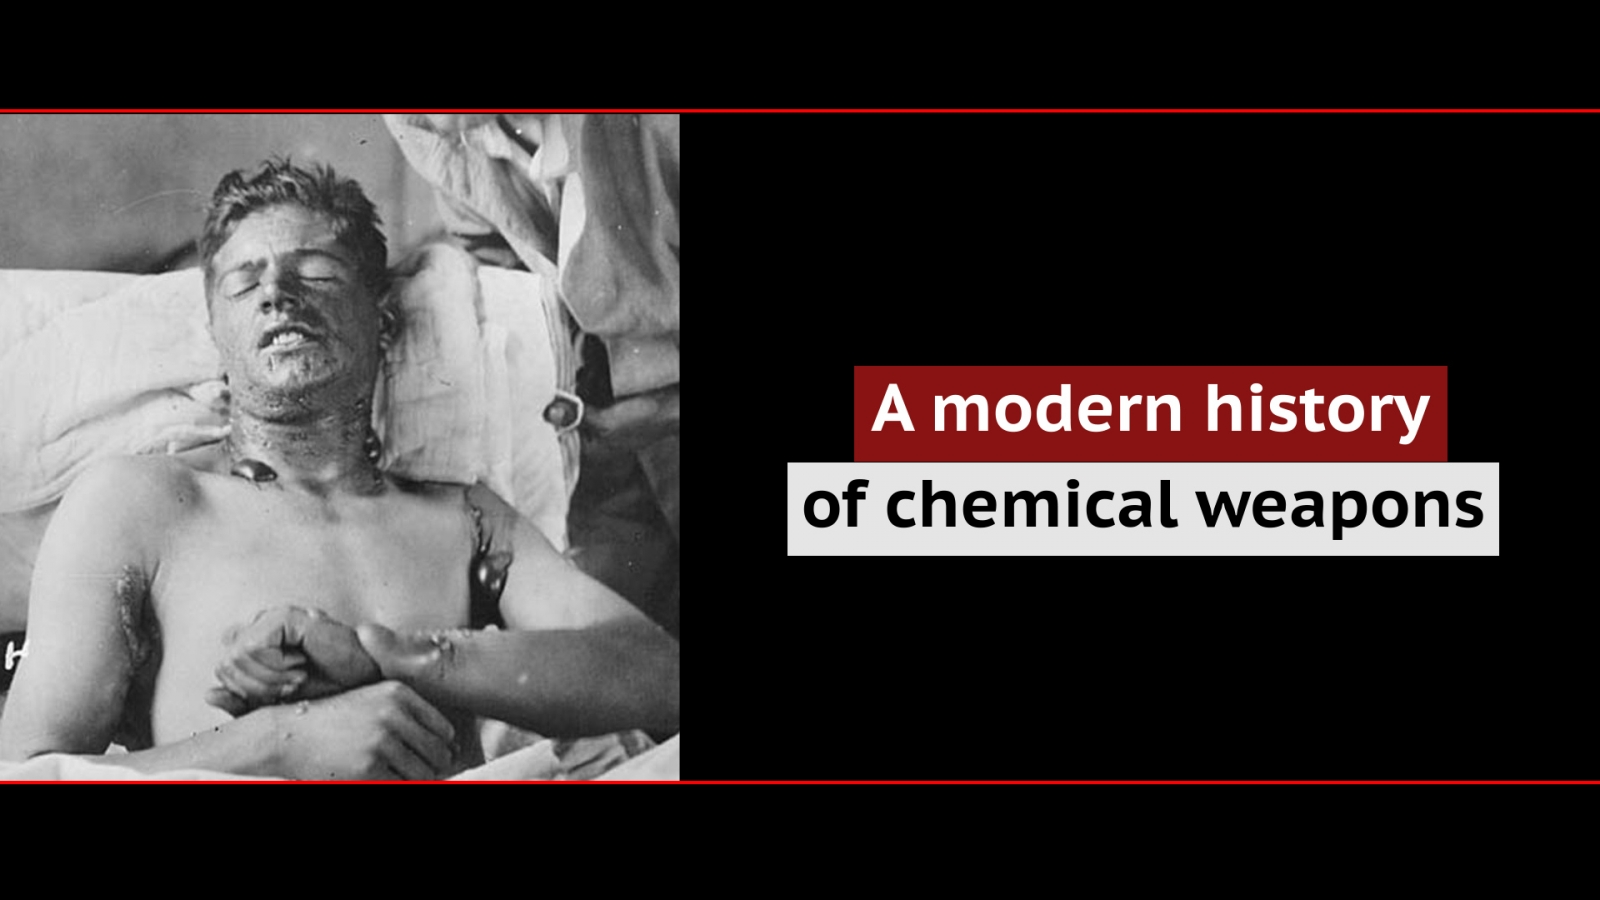 A modern history of chemical weapons